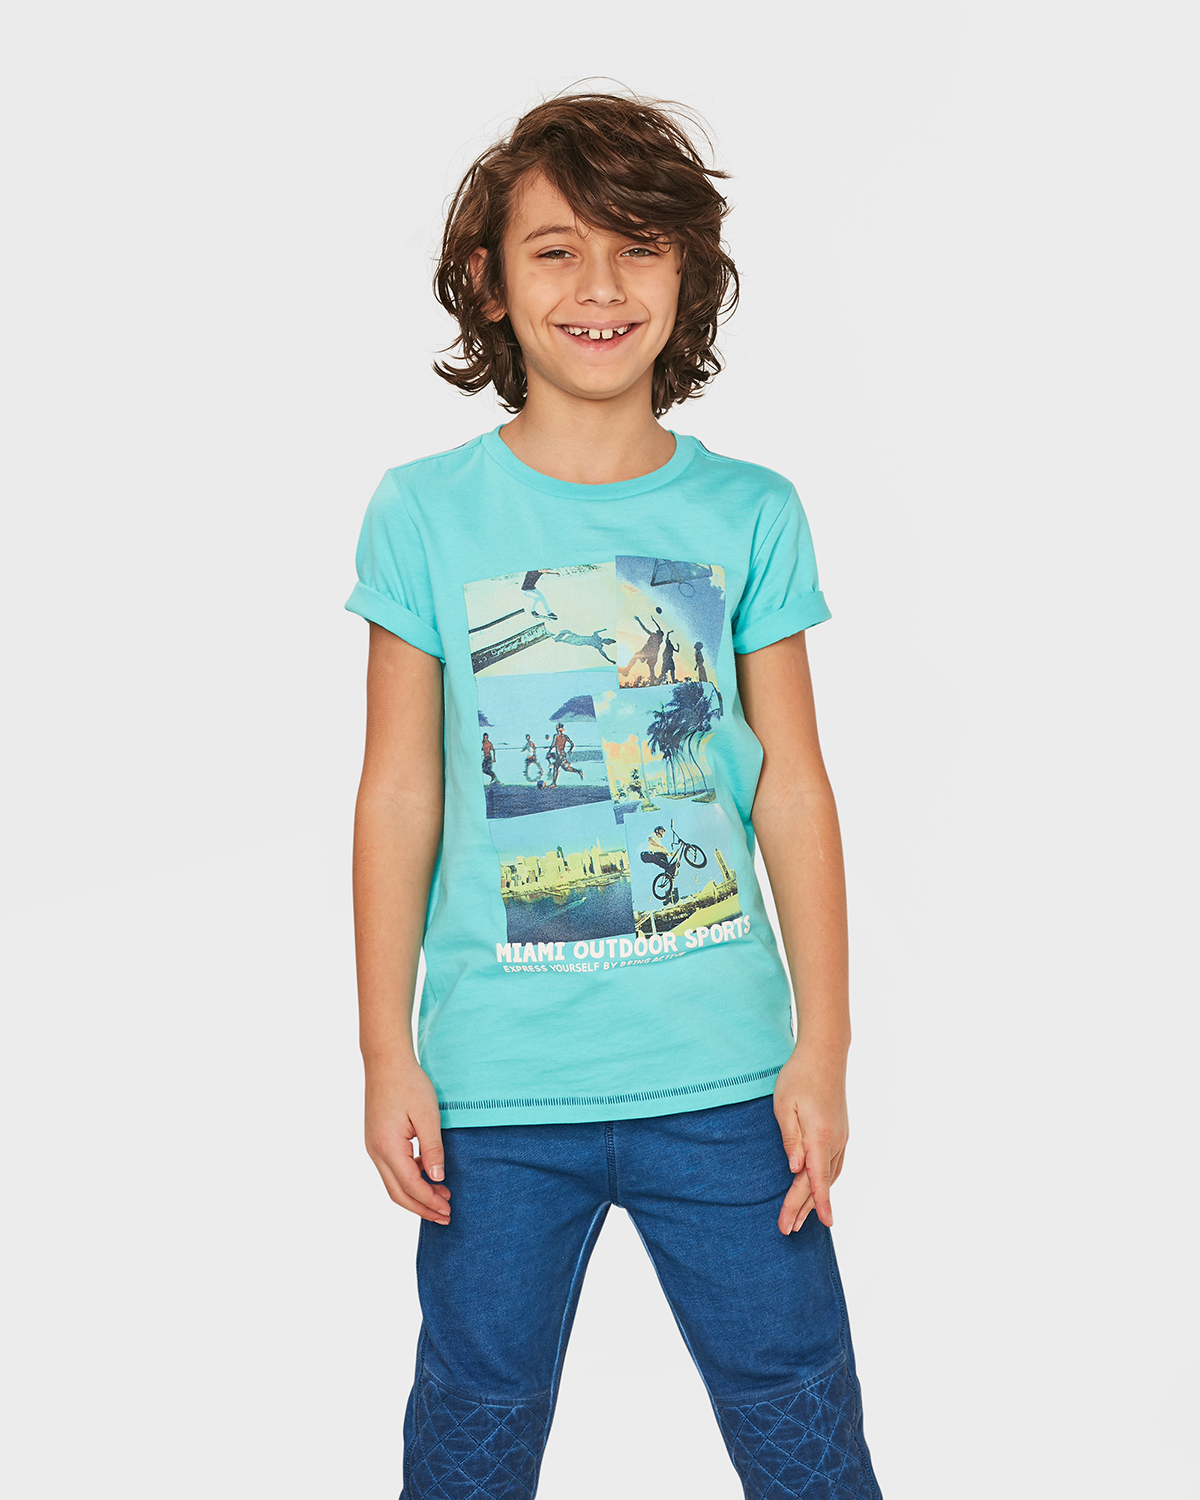 Jungen t shirt mit print 79731805 we fashion for T shirt printing delaware